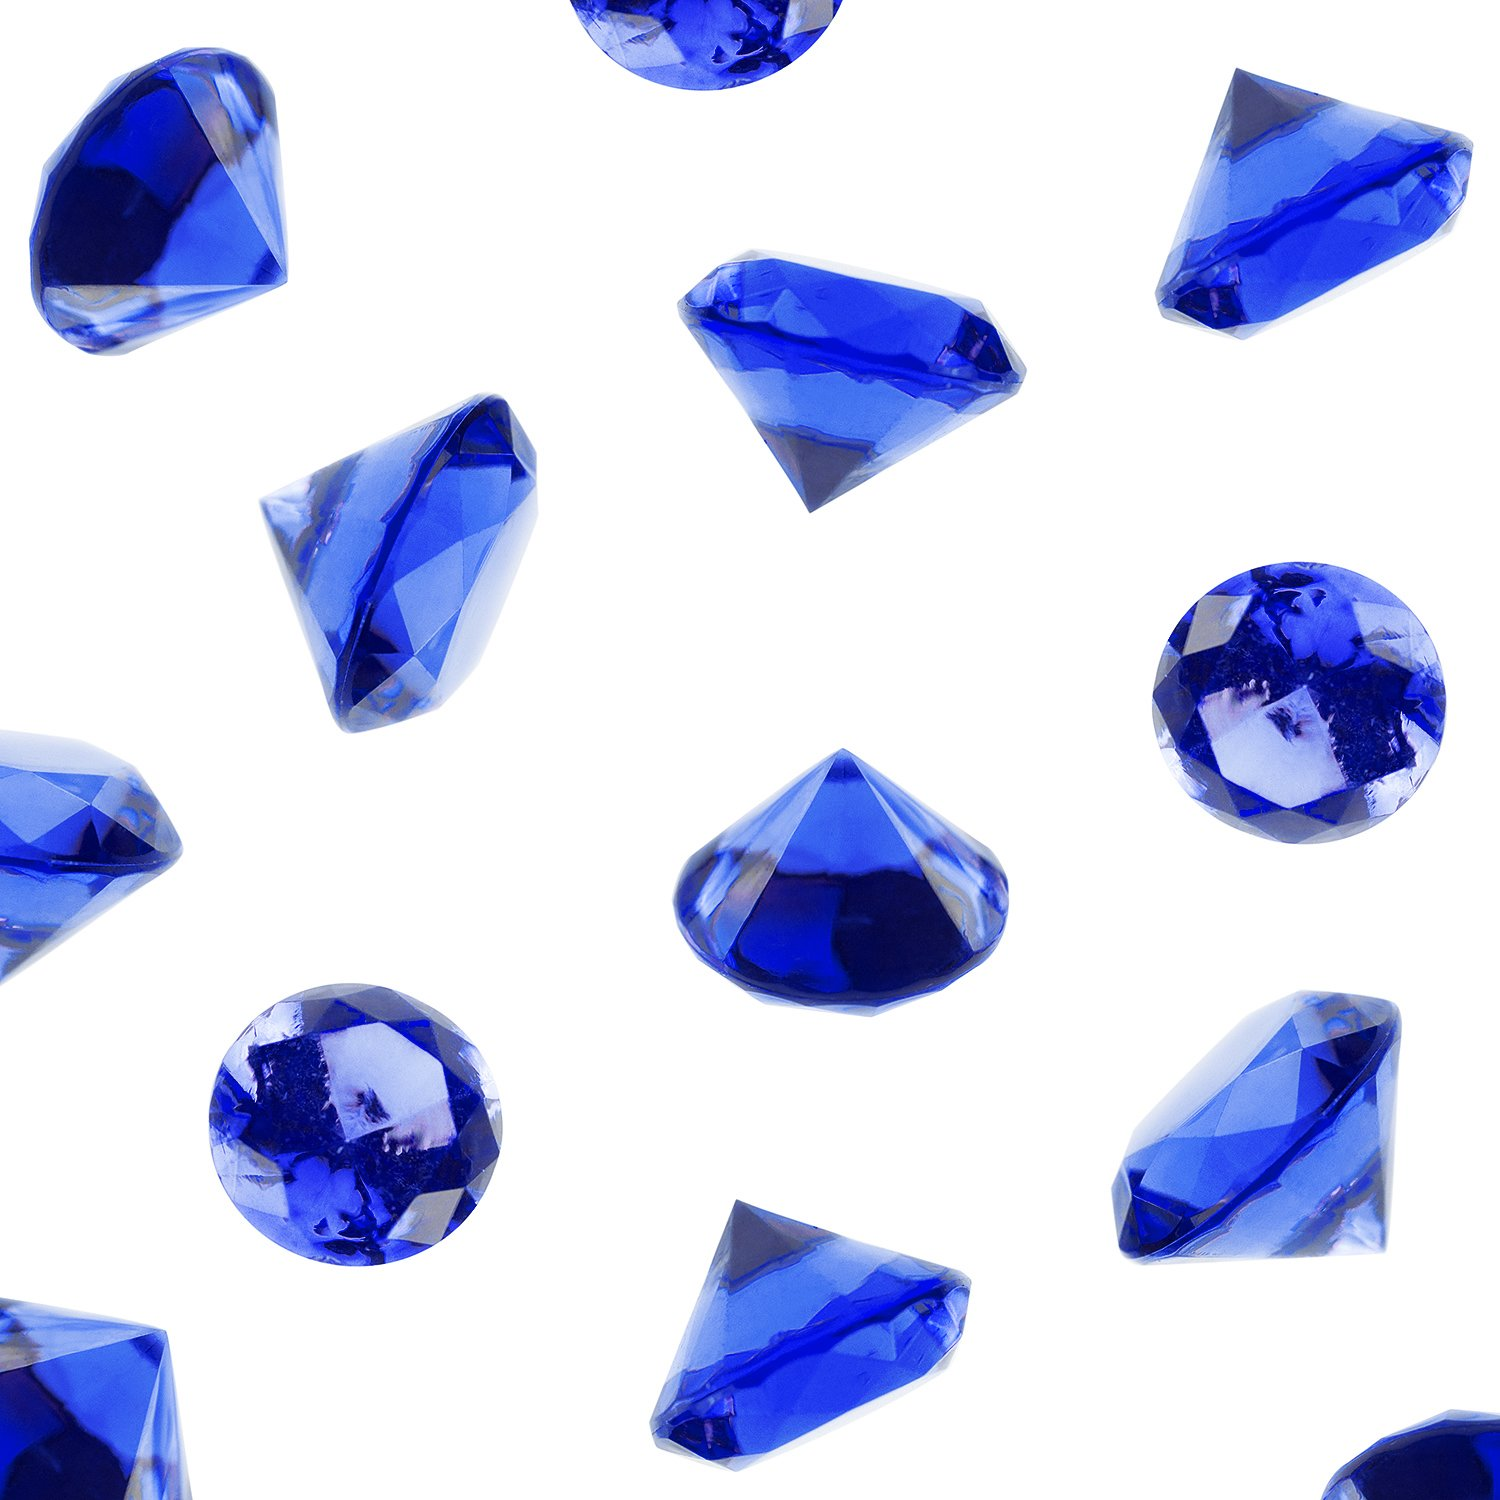 Super Z Outlet Acrylic Color Faux Round Diamond Crystals Treasure Gems for Table Scatters, Vase Fillers, Event, Wedding, Arts & Crafts (1 Pound, 240 Pieces) (Royal Blue)